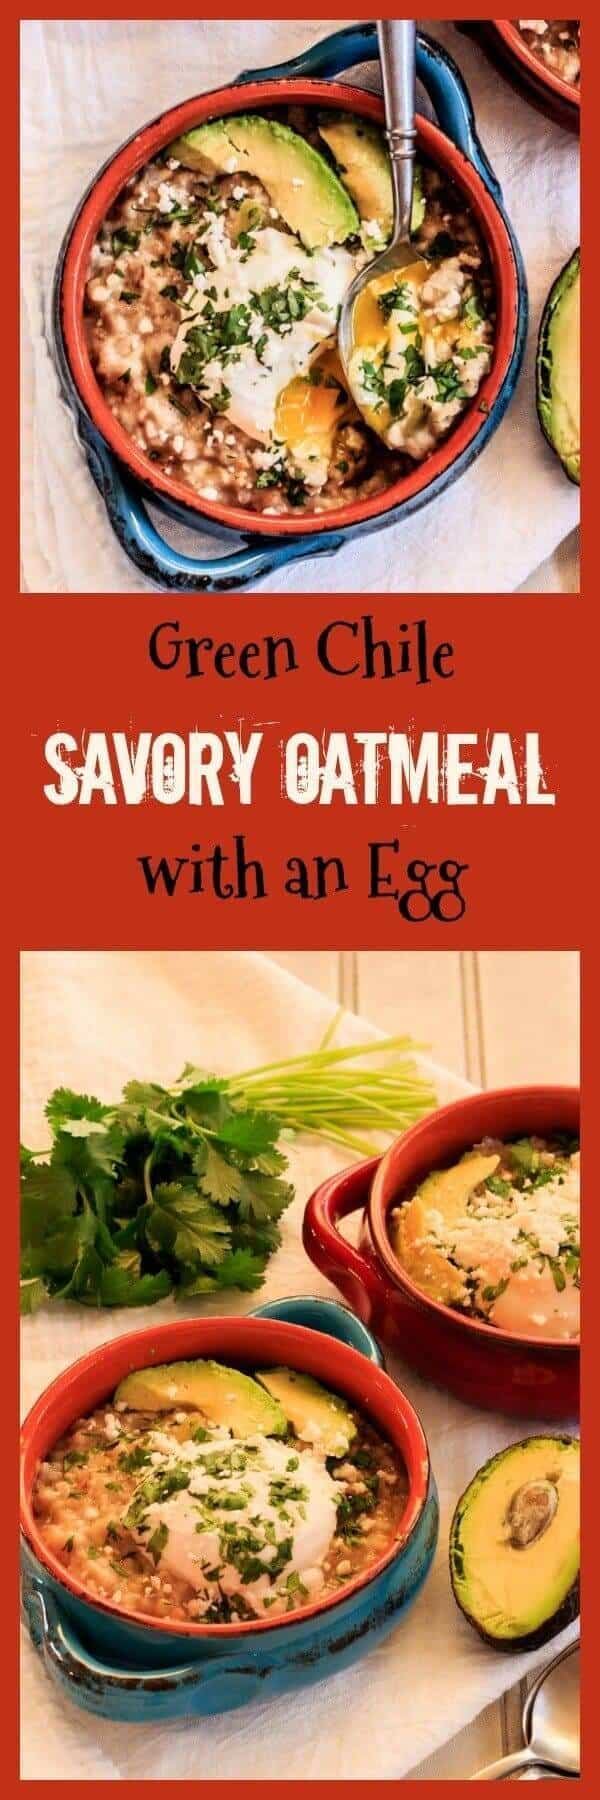 Green Chile Savory Oatmeal With An Egg - Savory oatmeal with green chile is a flavorful, quick, and healthy option for breakfast! Top it with an egg of your choice... Yum!